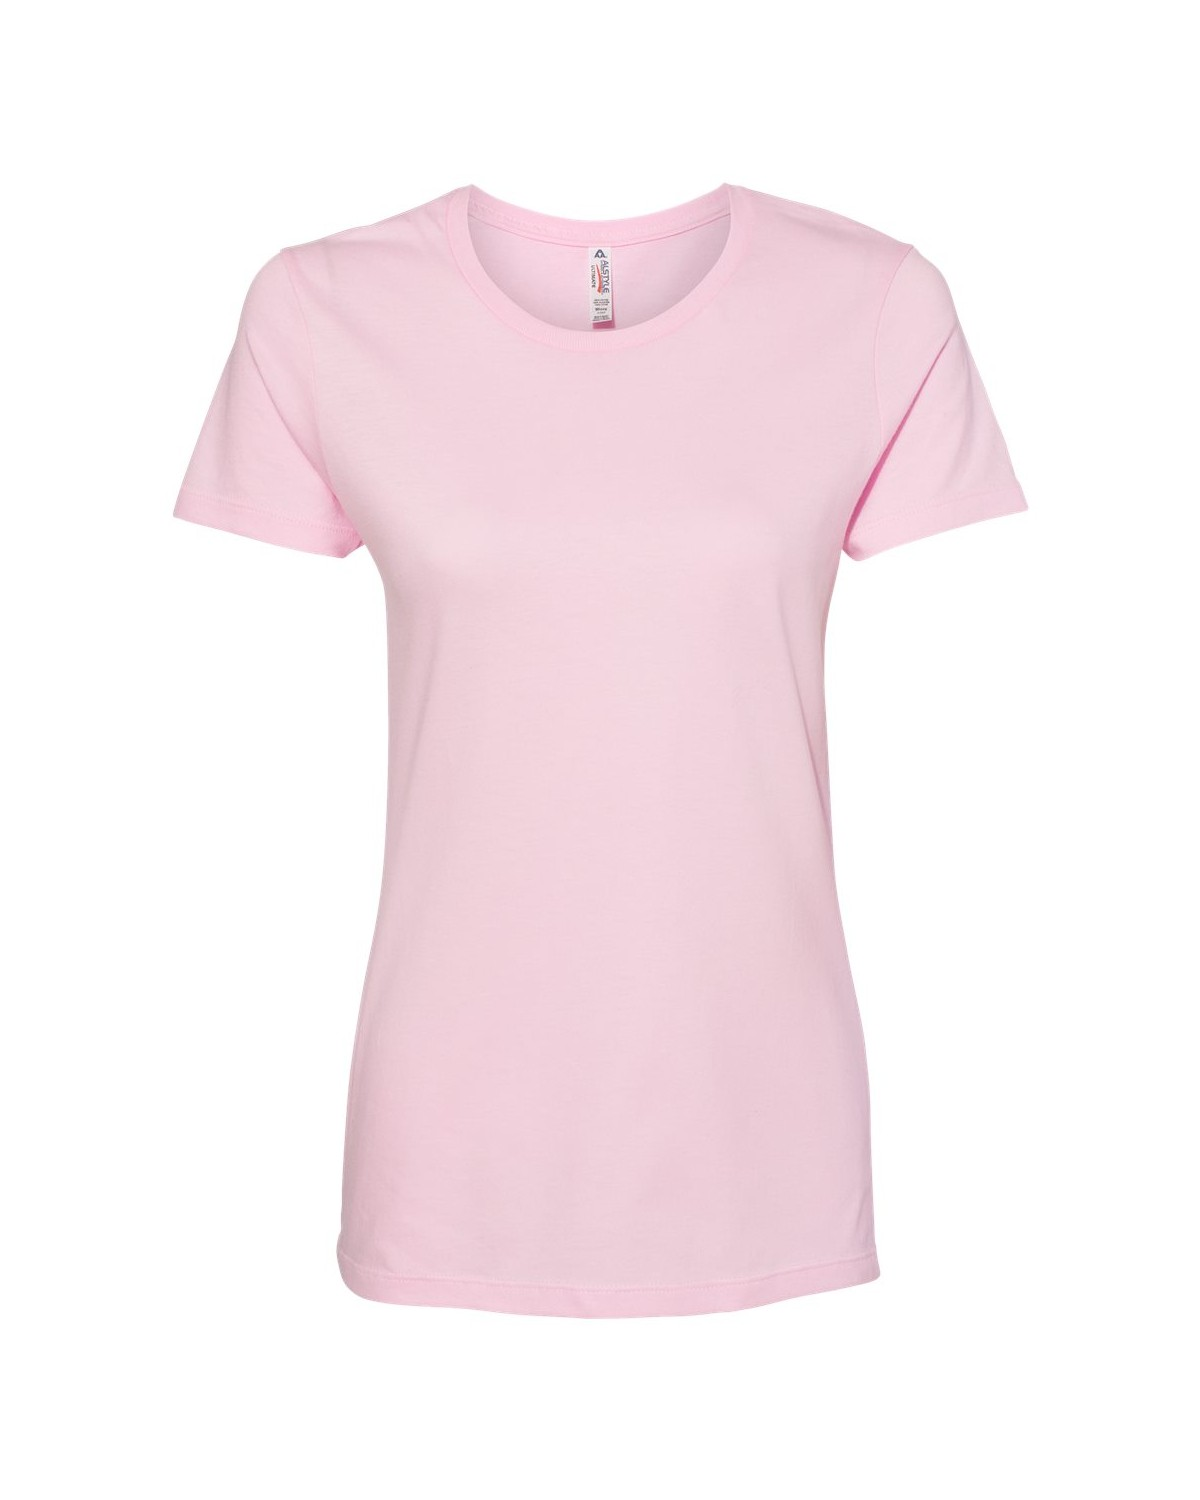 2562 Alstyle PINK